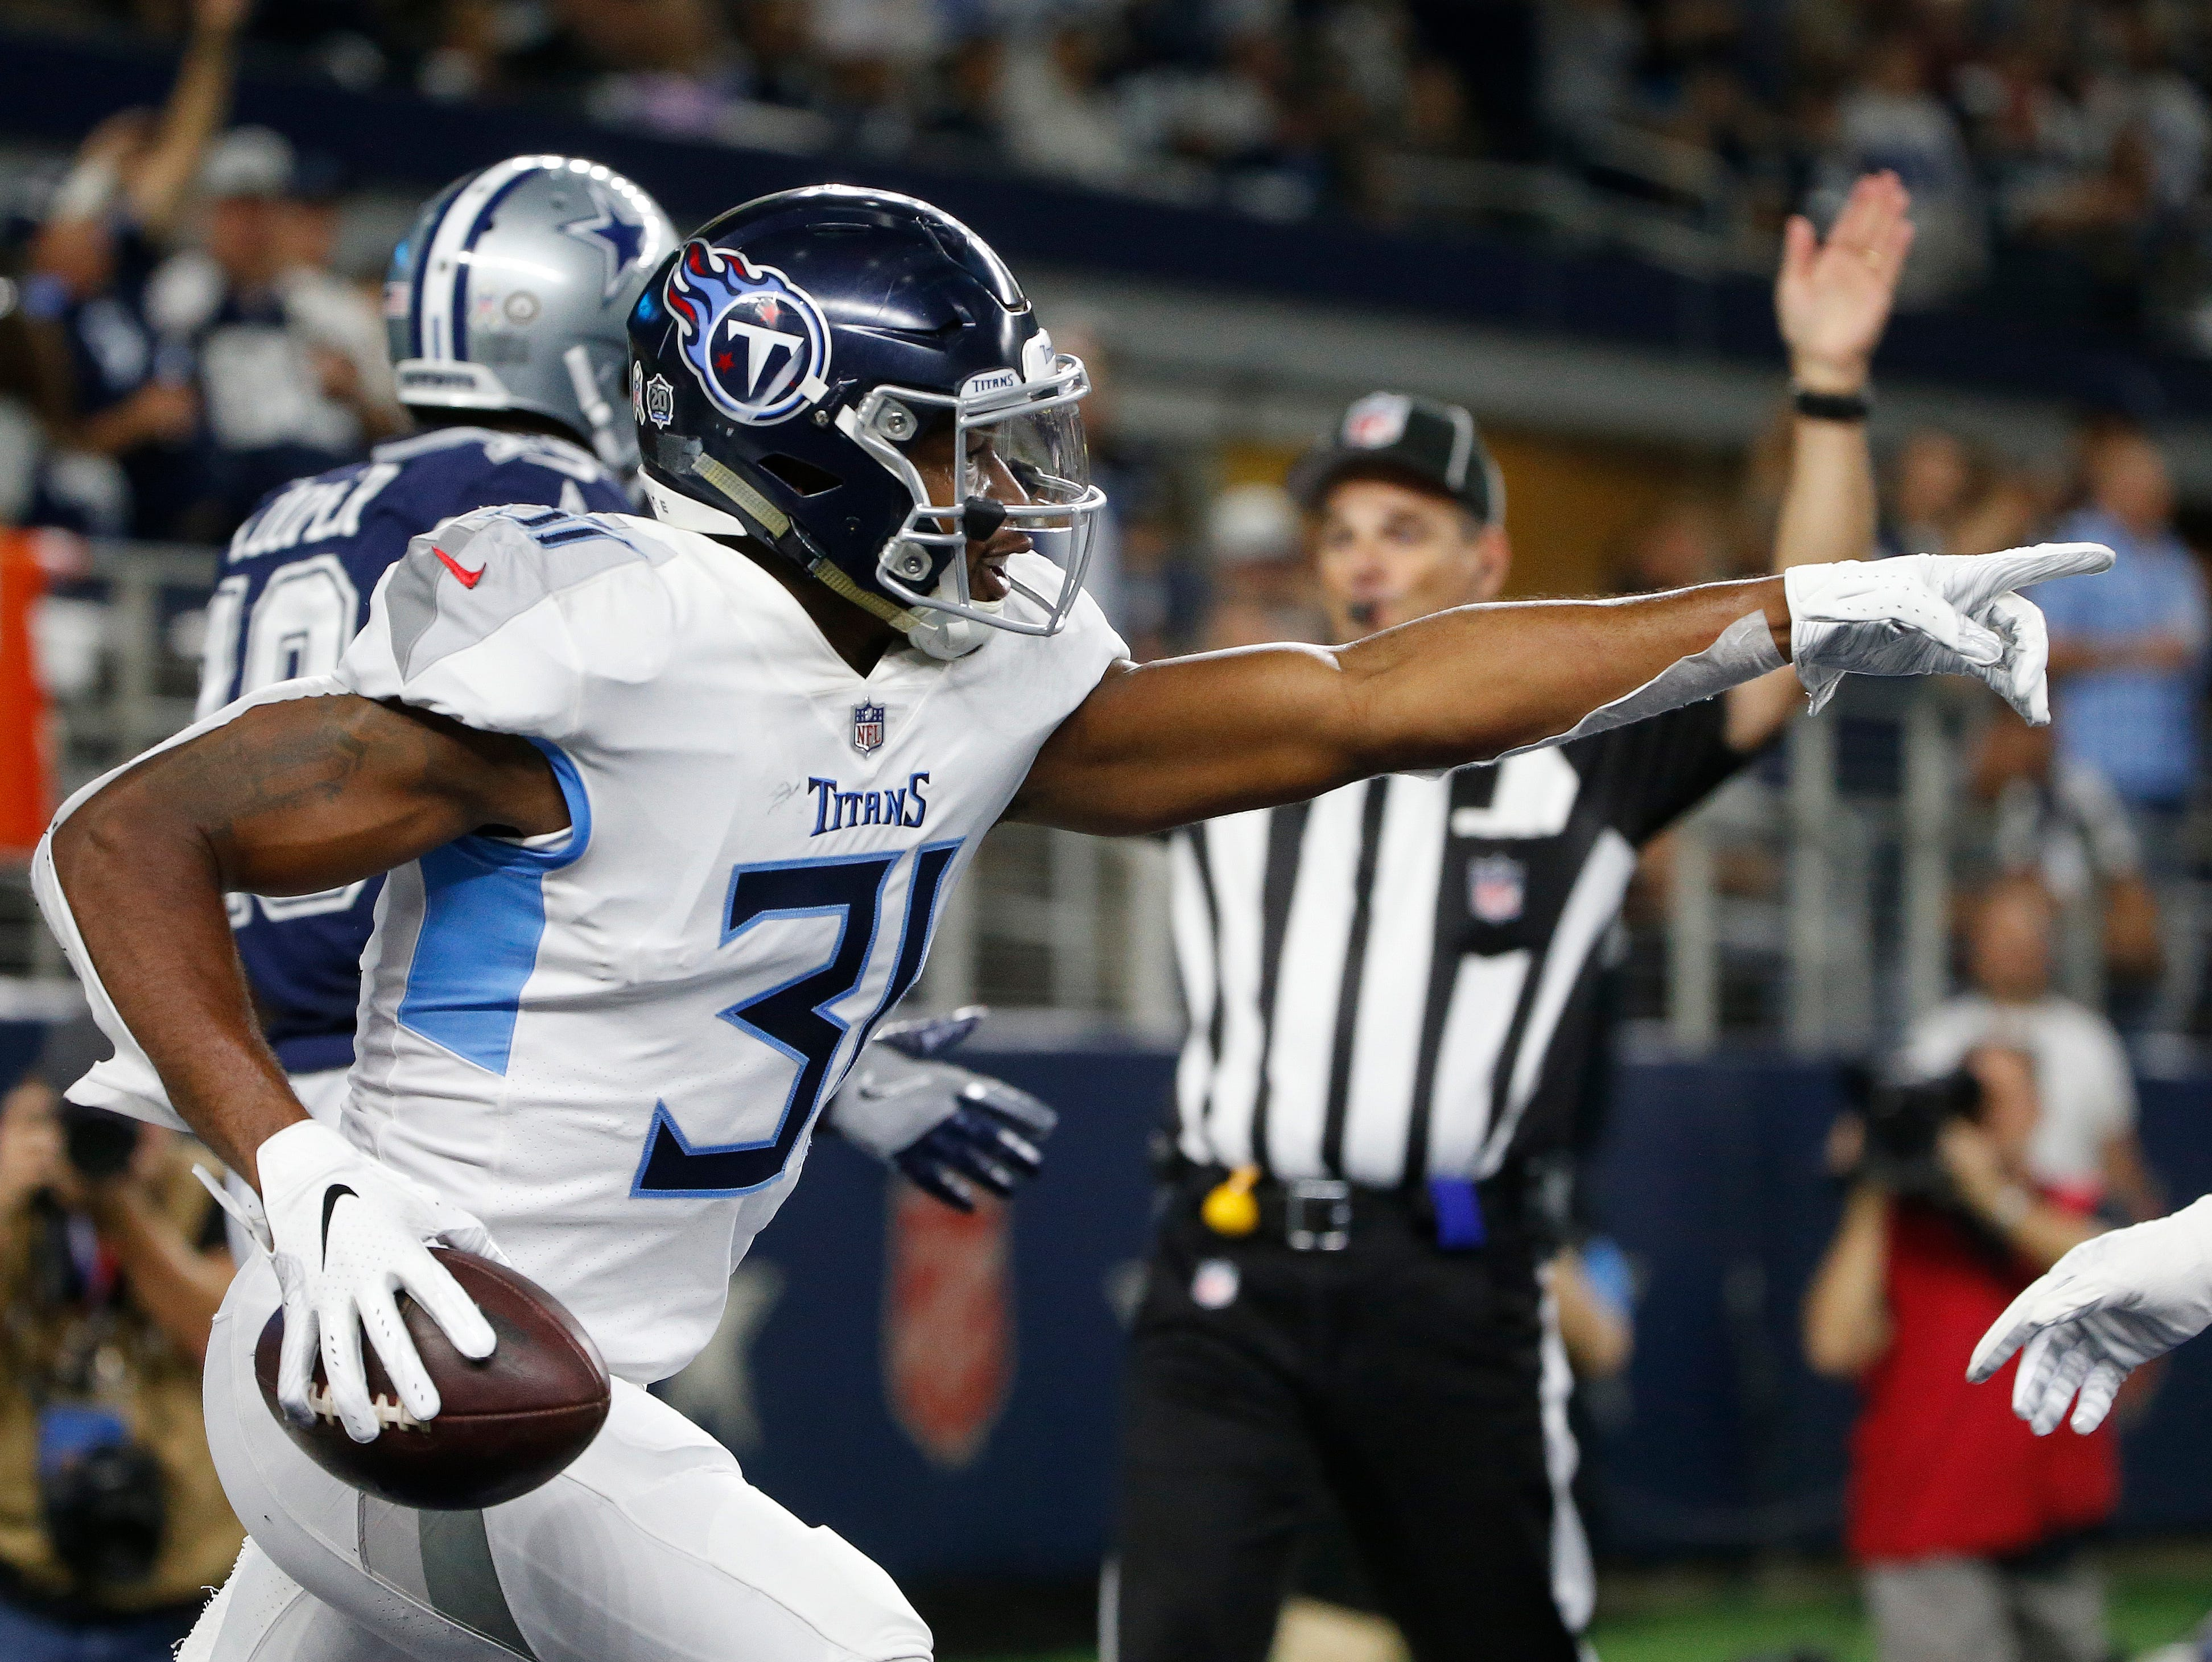 Titans safety Kevin Byard (31) celebrates his interception against the Dallas Cowboys the first half of an NFL football game, Monday, Nov. 5, 2018, in Arlington, Texas.